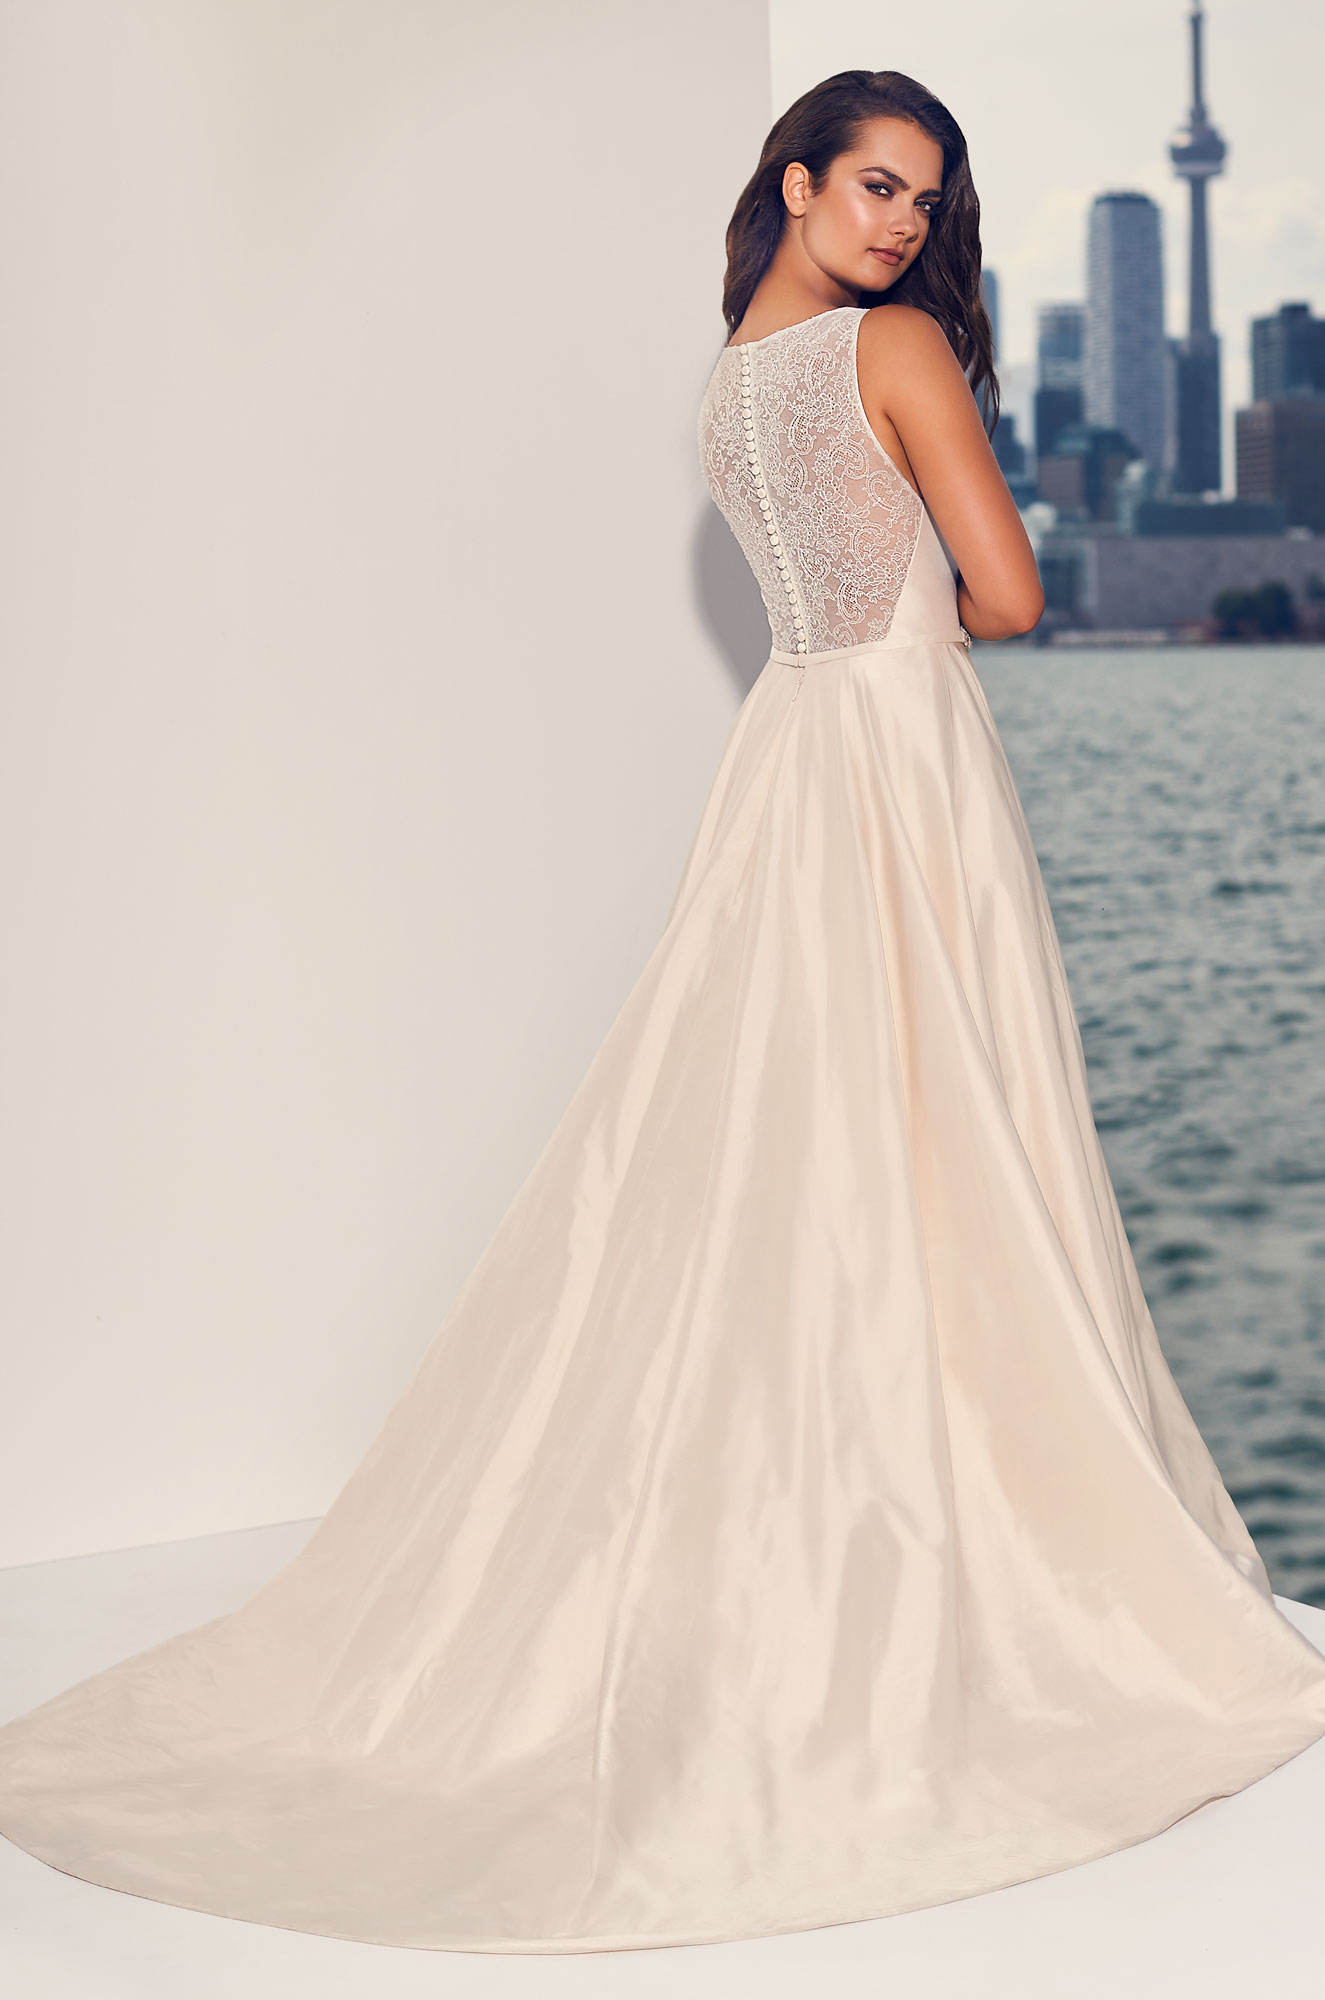 Illusion Lace Back Wedding Dress - Style #4827 | Paloma Blanca